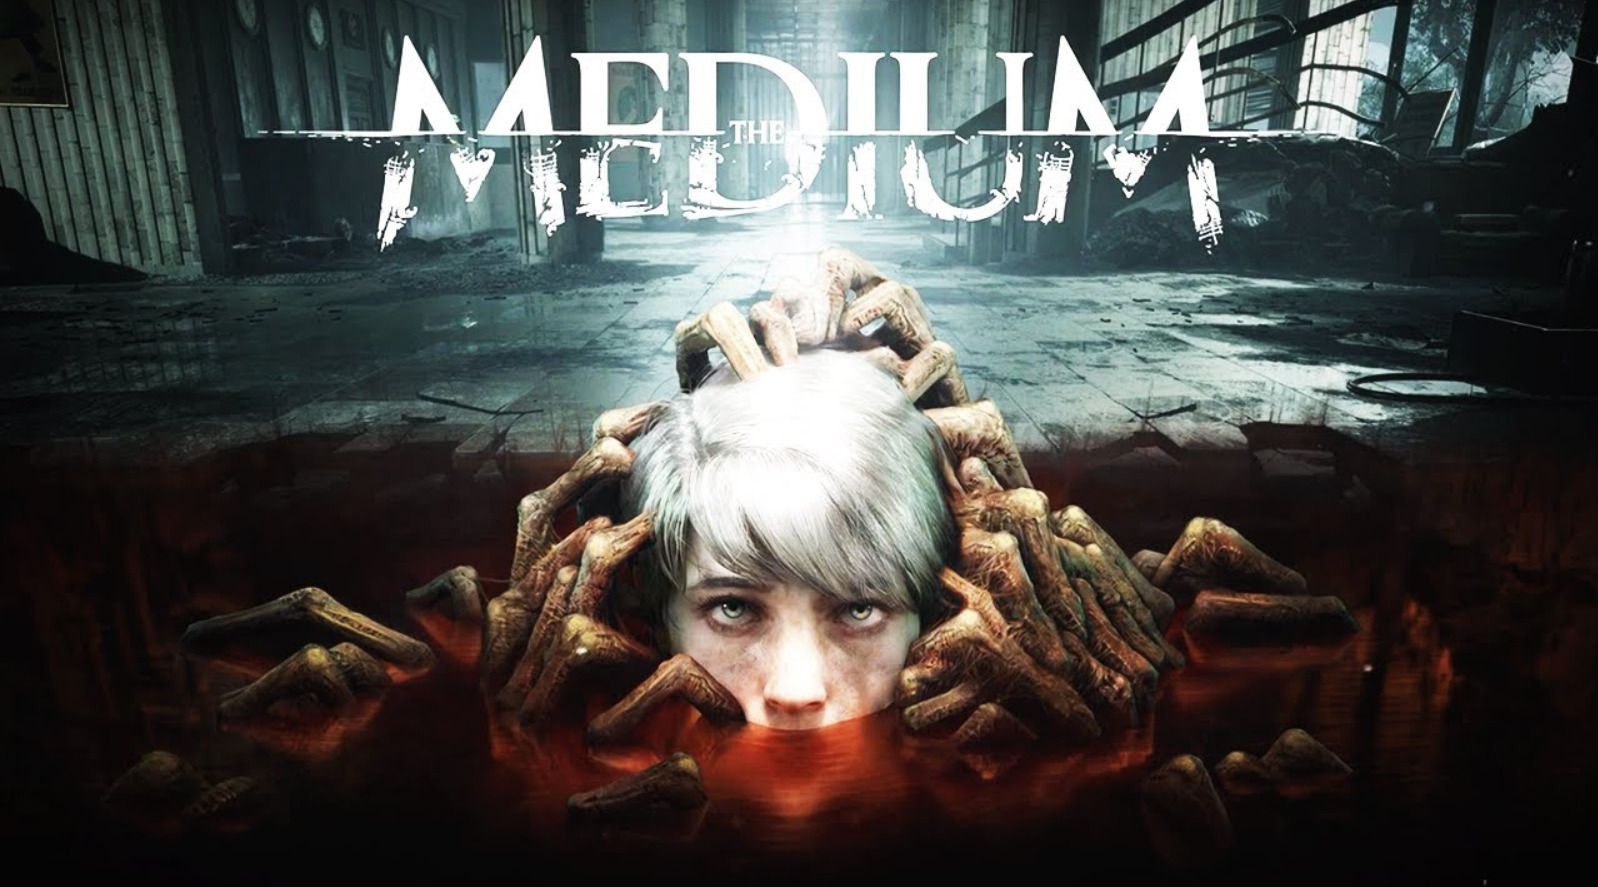 the-medium the-medium key buy key medium horror game download buy cdkey the medium steamkey steam key mediumth